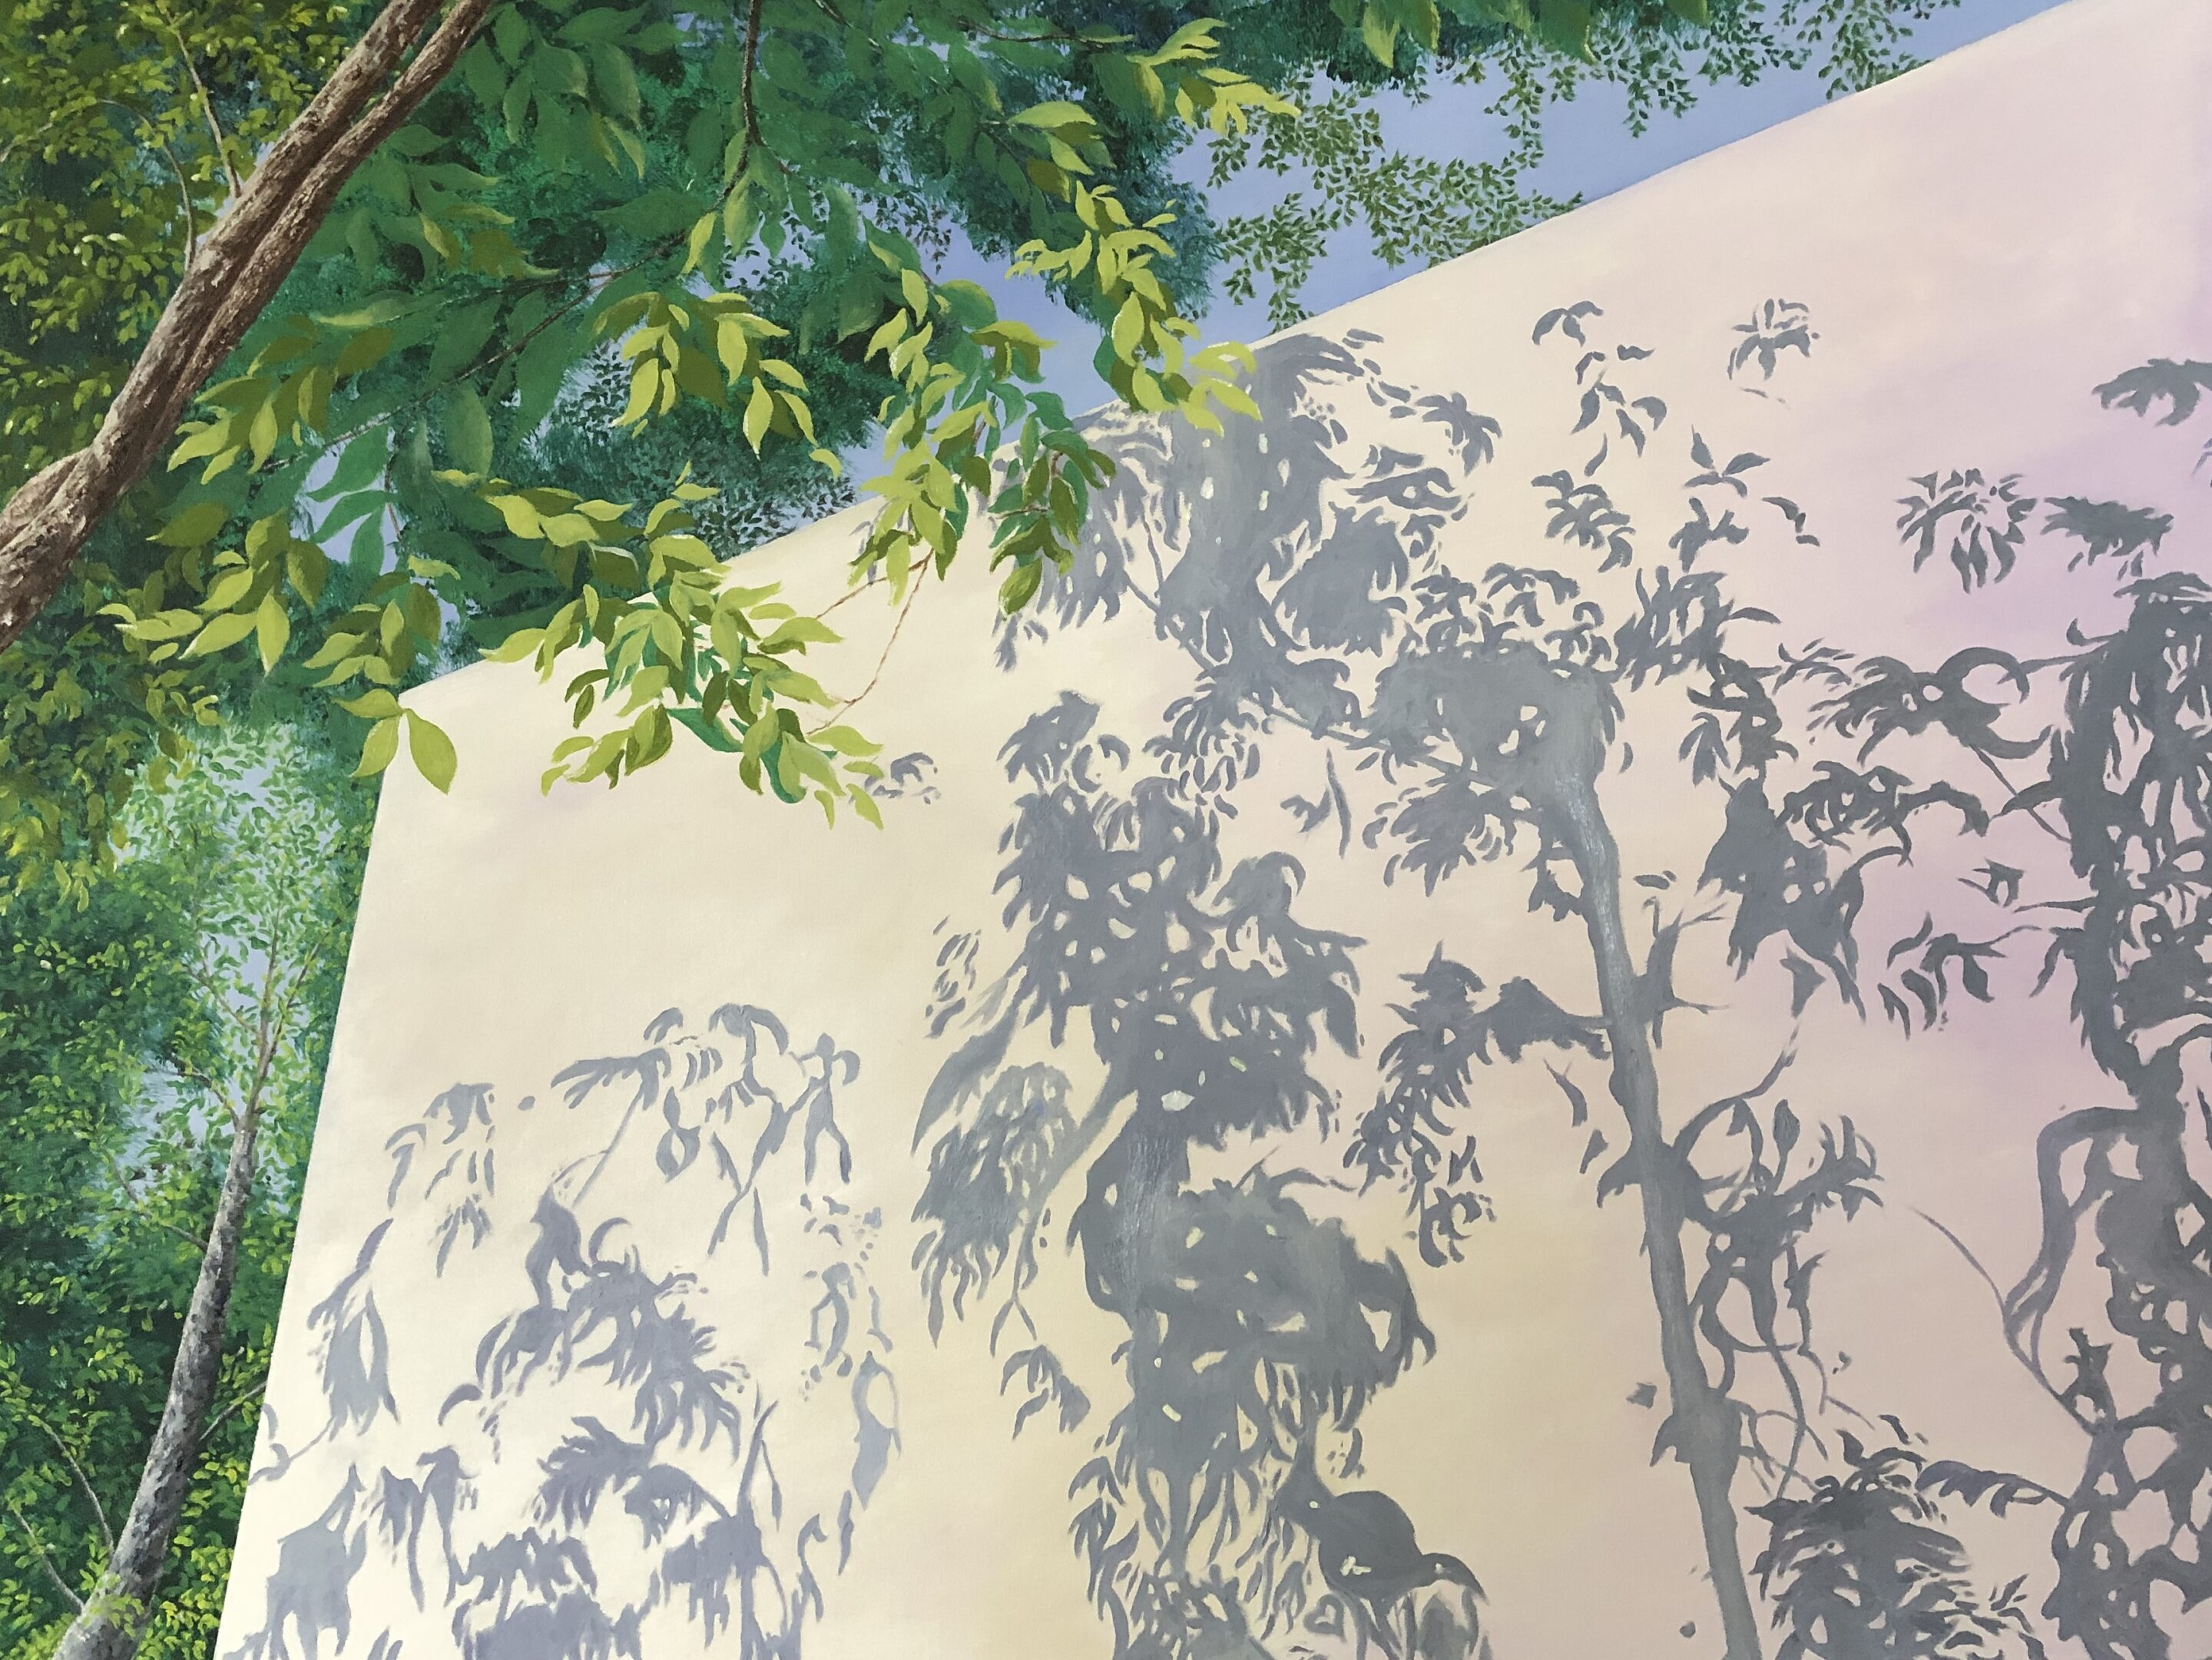 Blue sky, green leaves, brown trunks, white wall. gray shadows